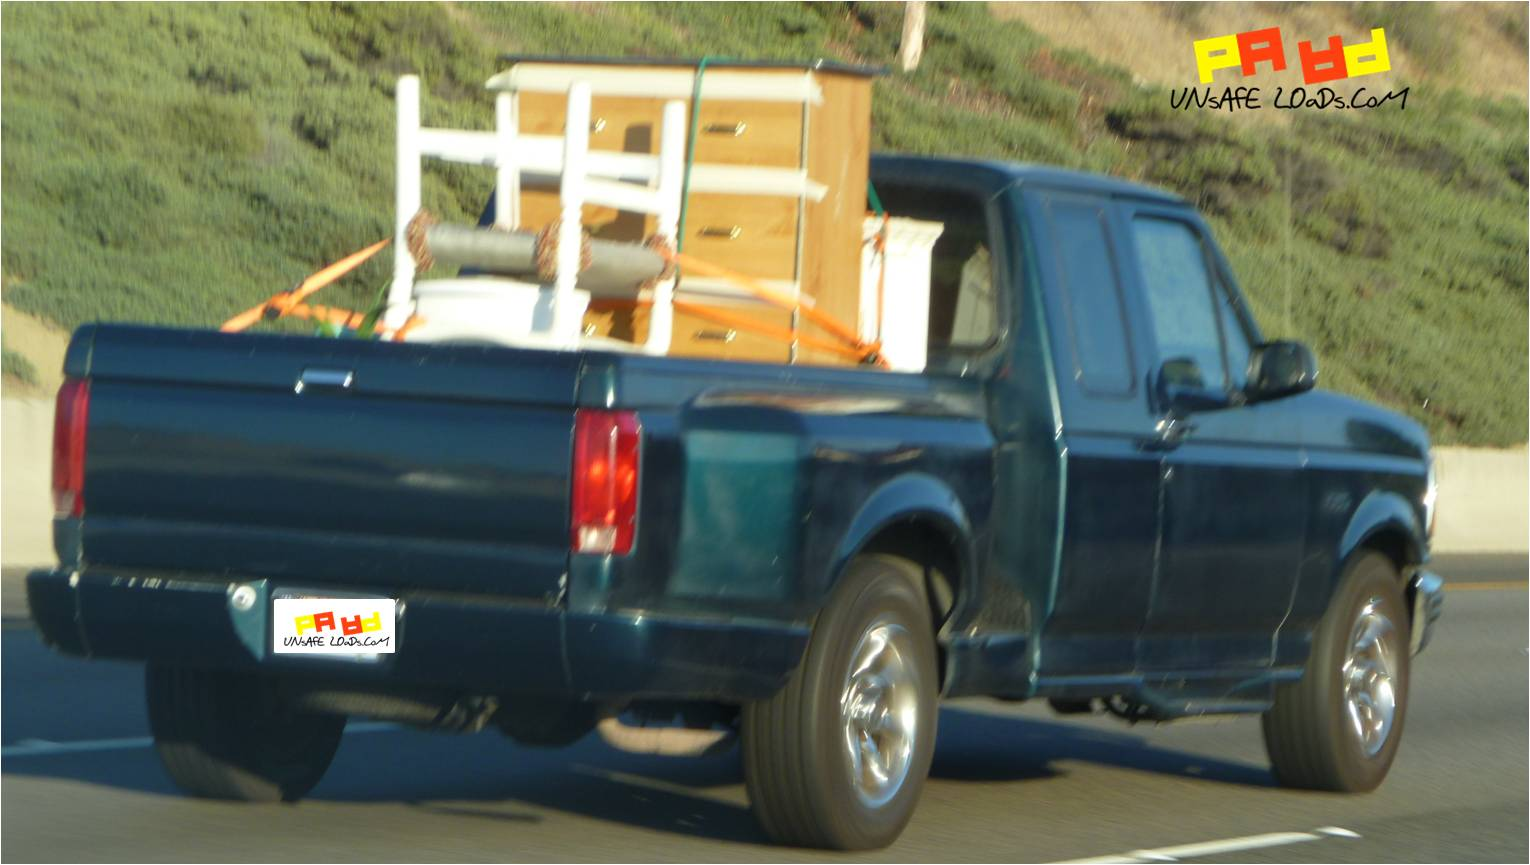 Furnished pickup truck